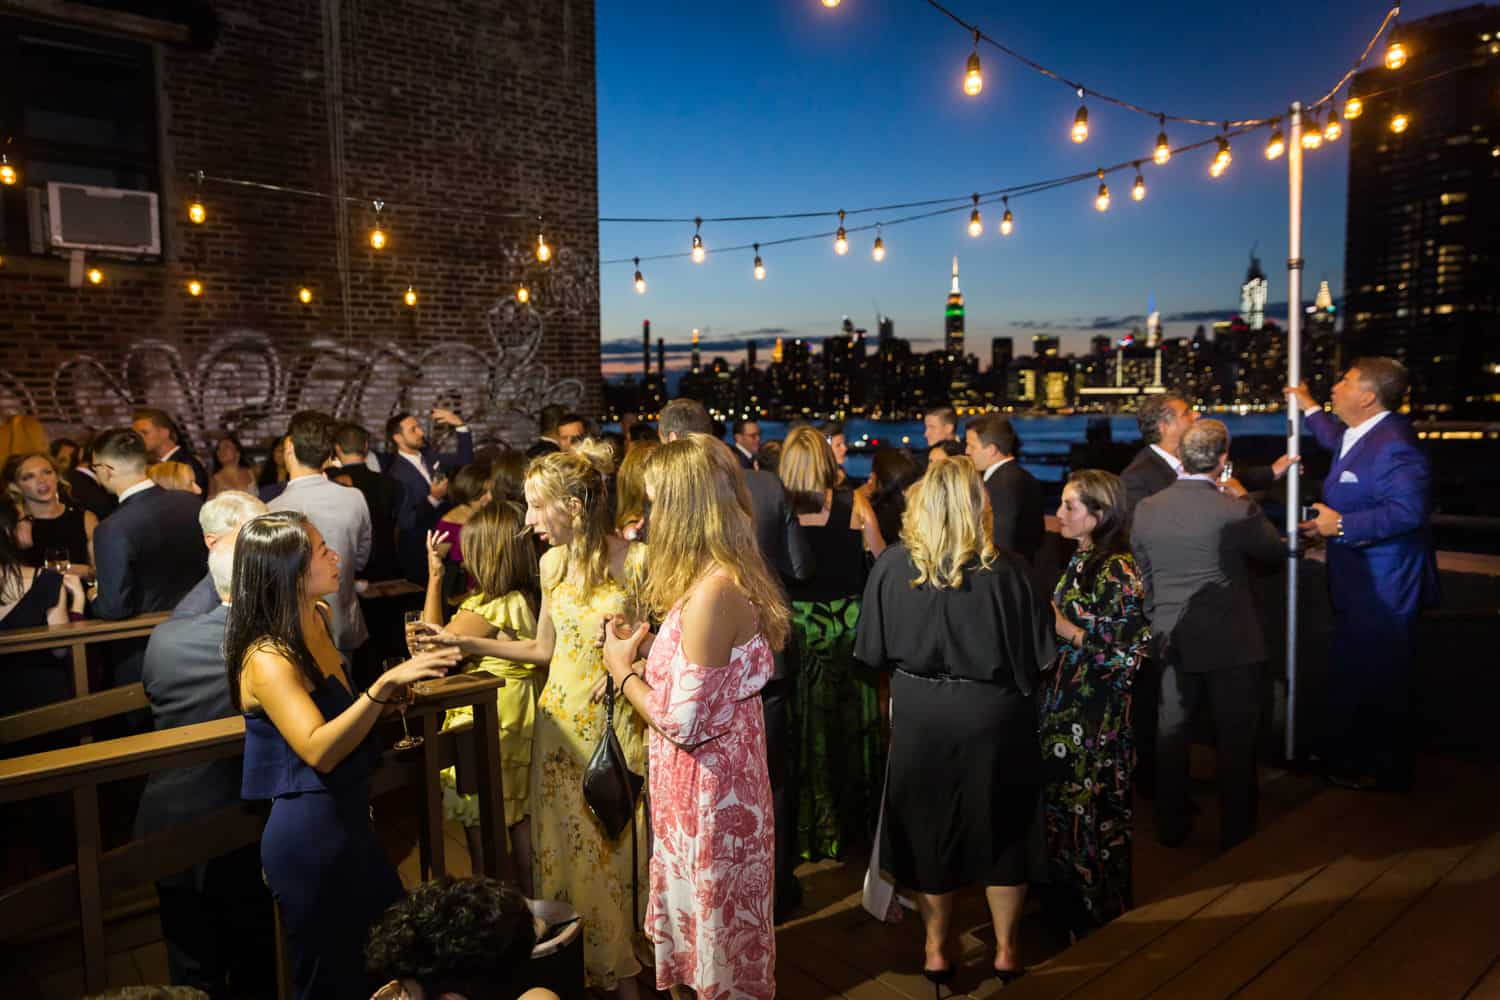 Greenpoint Loft wedding photos of guests enjoying cocktail hour on the roof at night